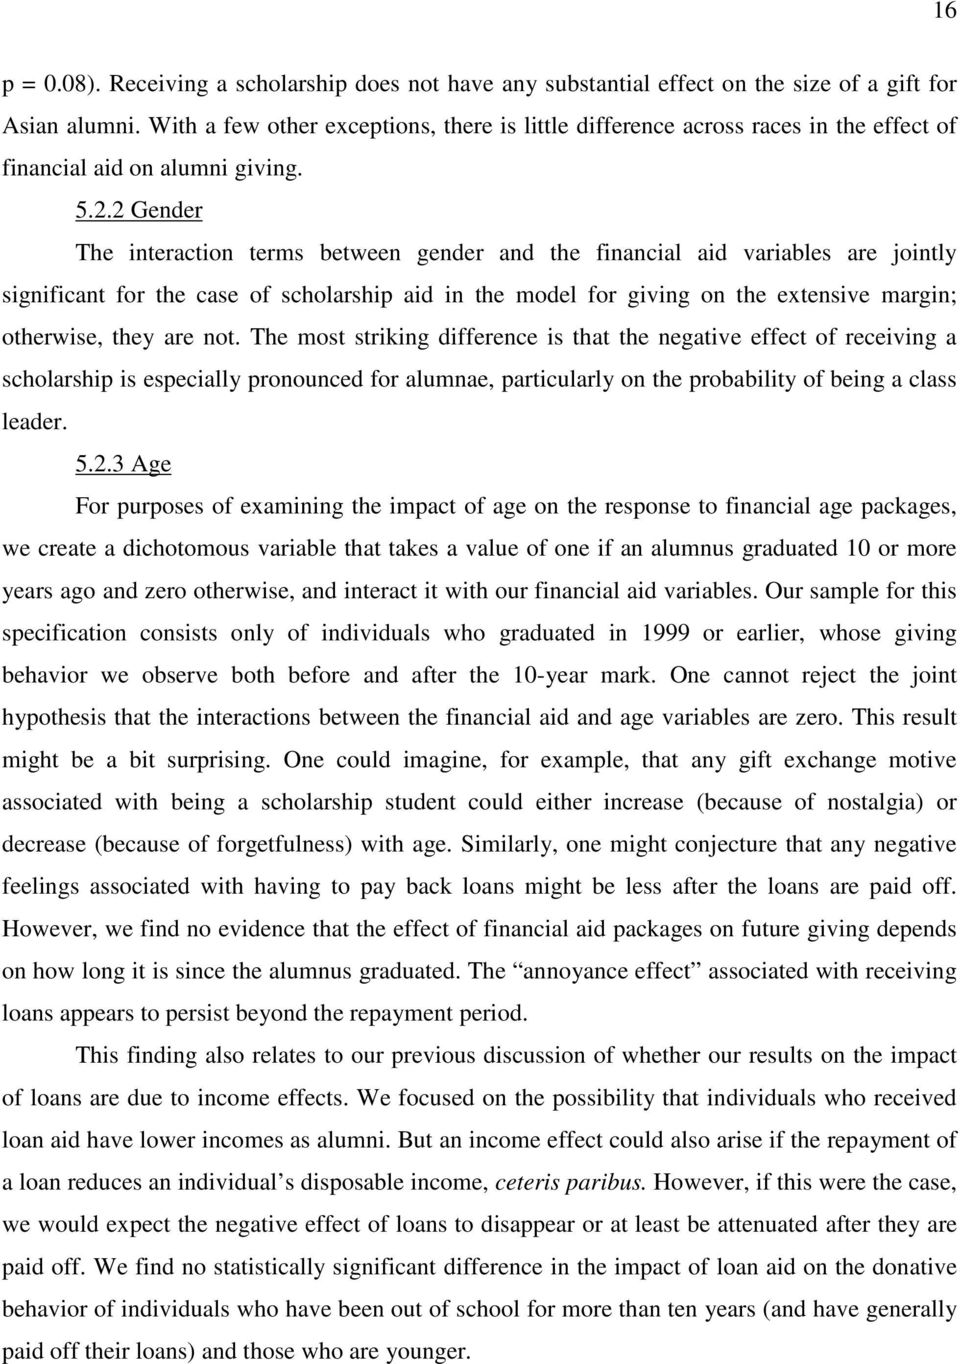 2 Gender The interaction terms between gender and the financial aid variables are jointly significant for the case of scholarship aid in the model for giving on the extensive margin; otherwise, they